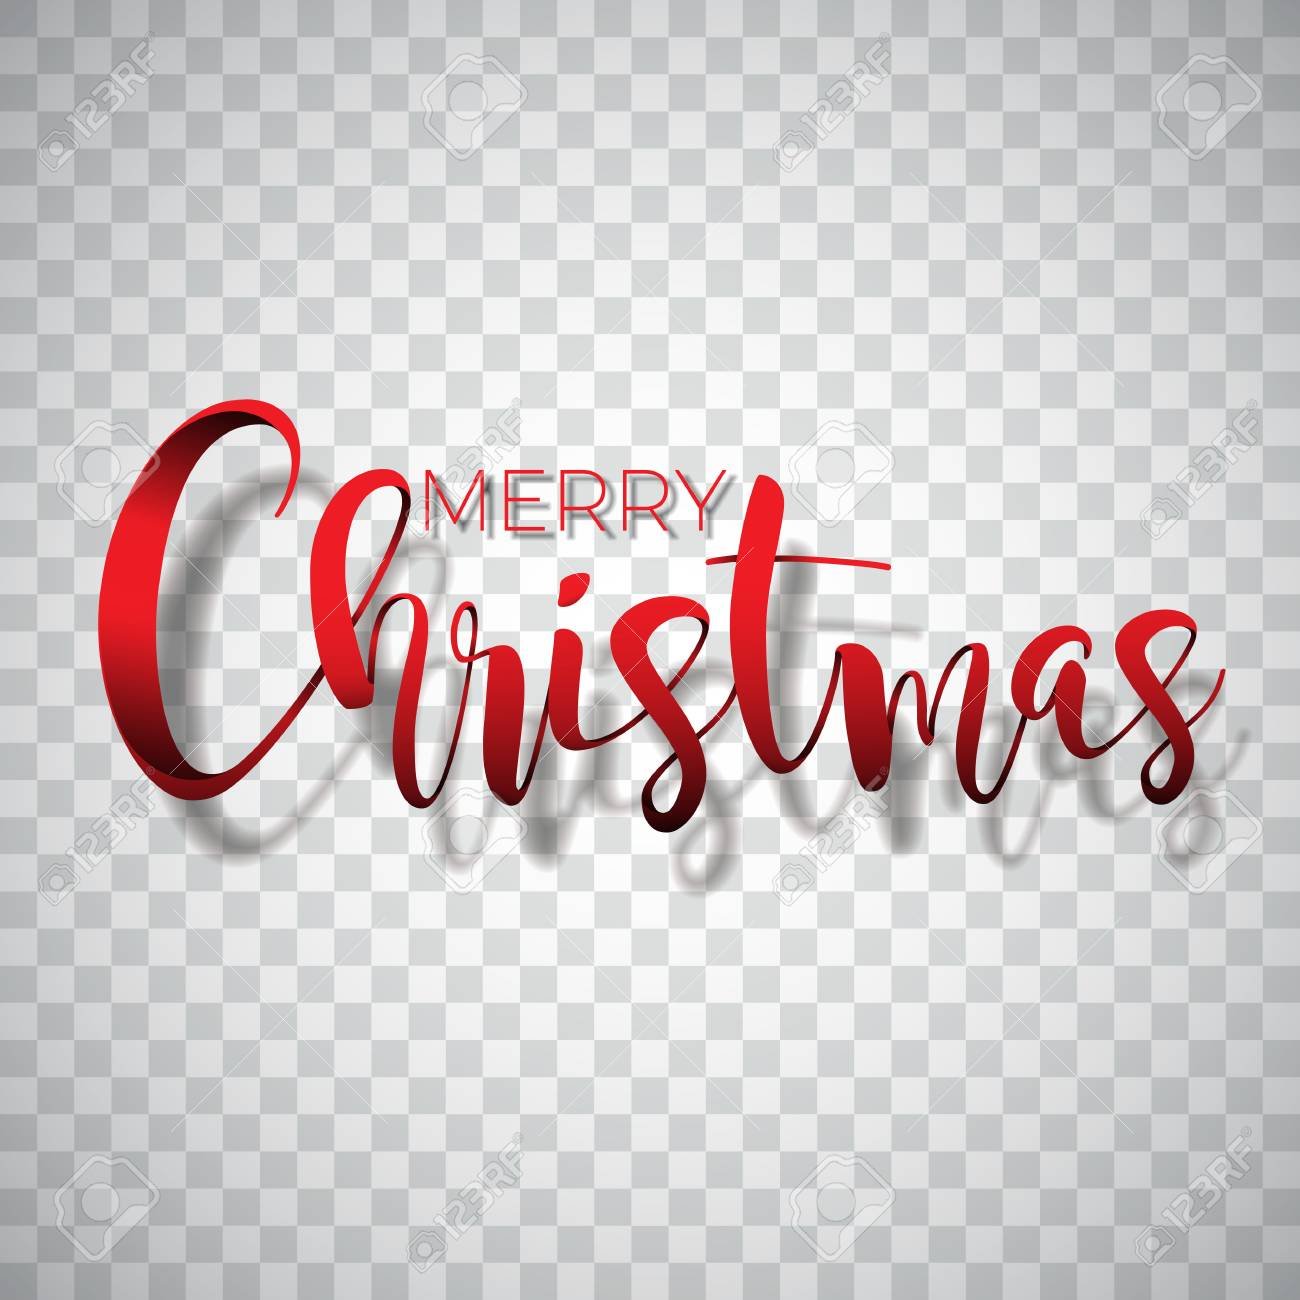 Merry Christmas No Background.Merry Christmas Typography Illustration On A Transparent Background